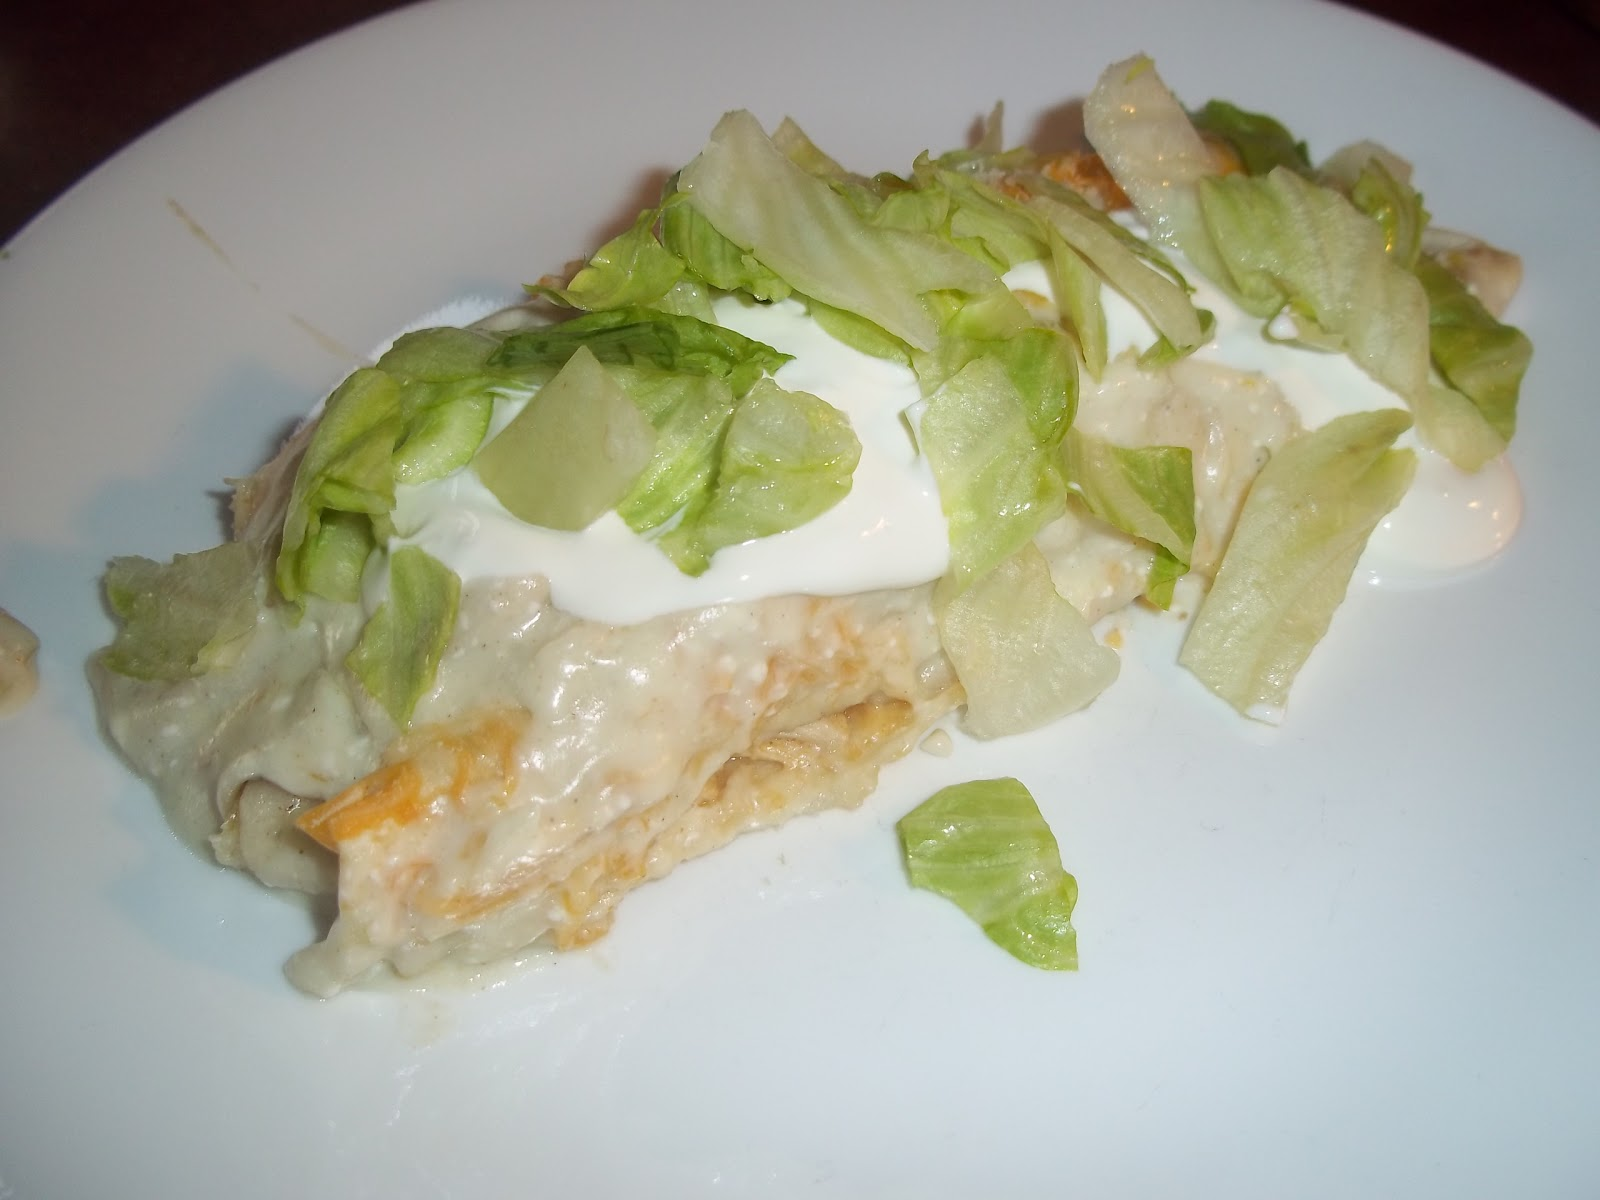 ... Daily Smash: White Chicken Enchiladas with Creamy Green Chili Sauce